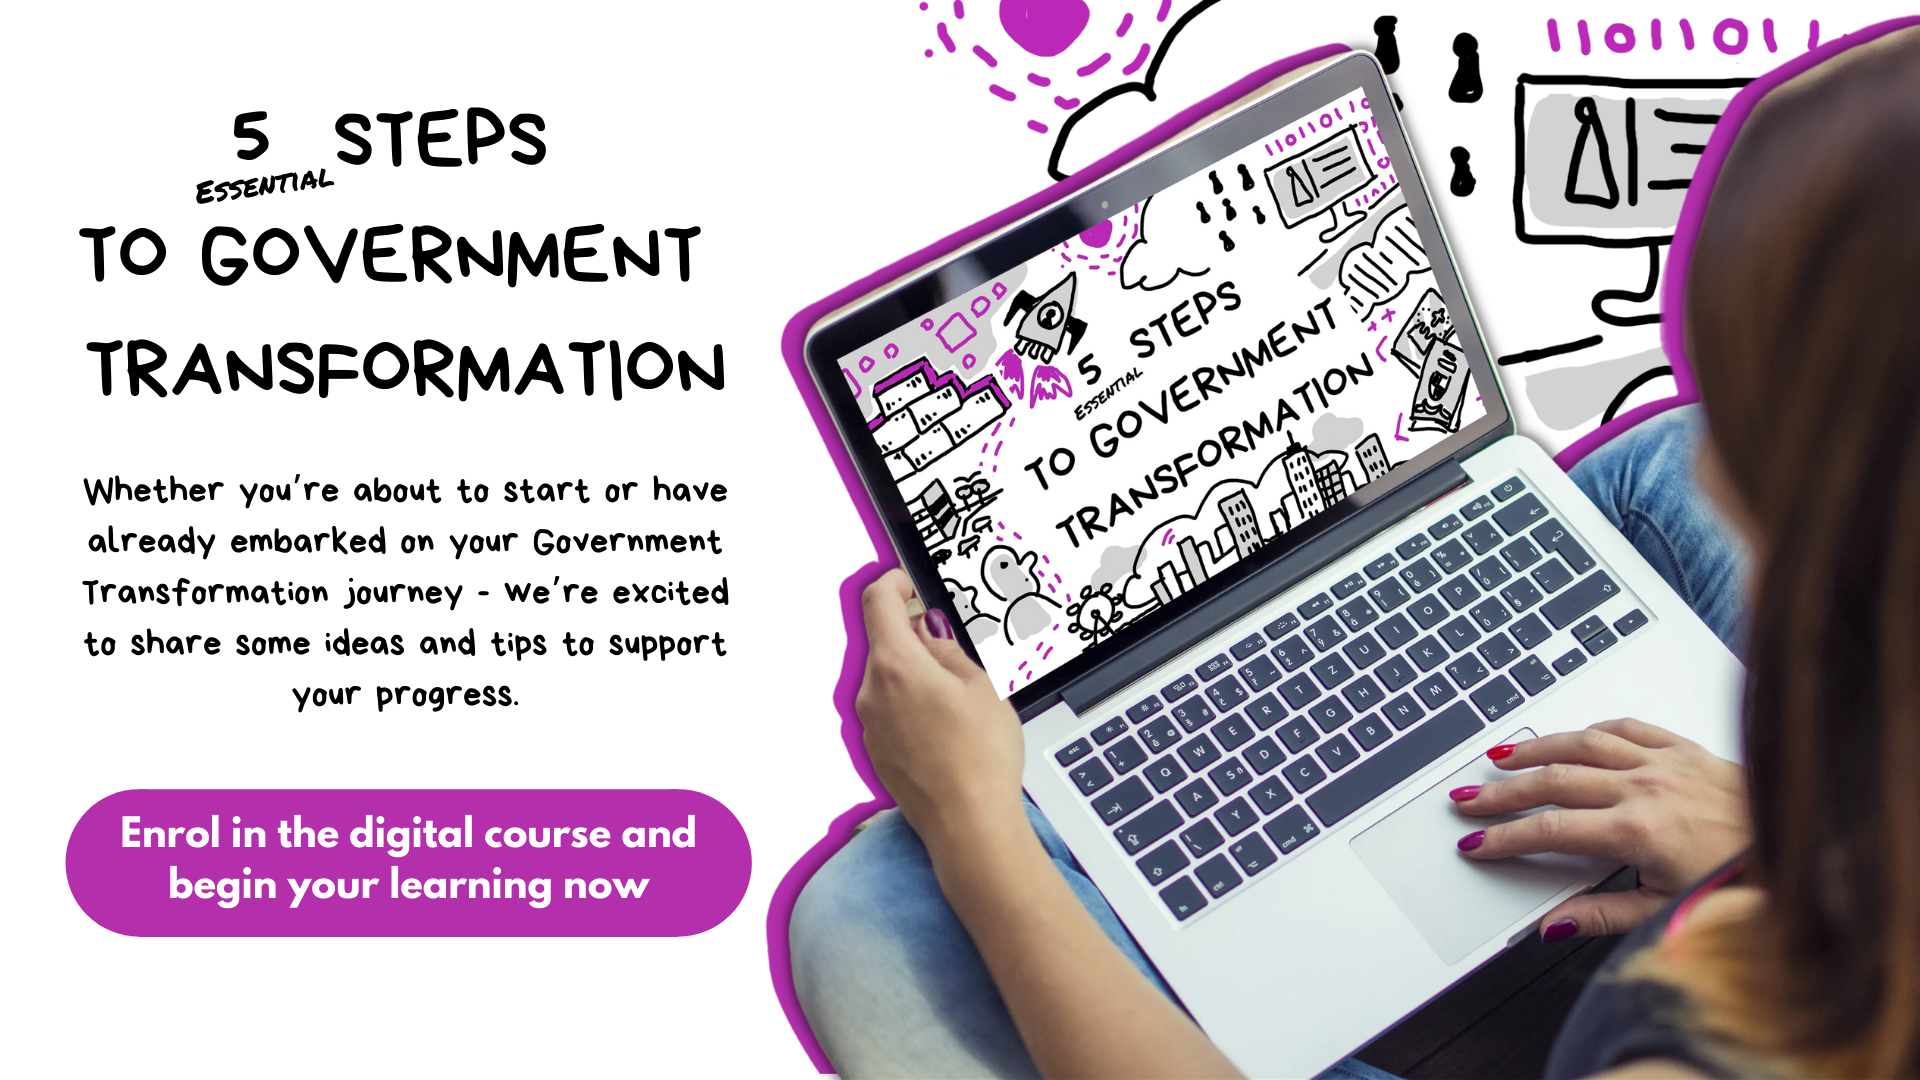 5 Steps to gov trans [email sequence]